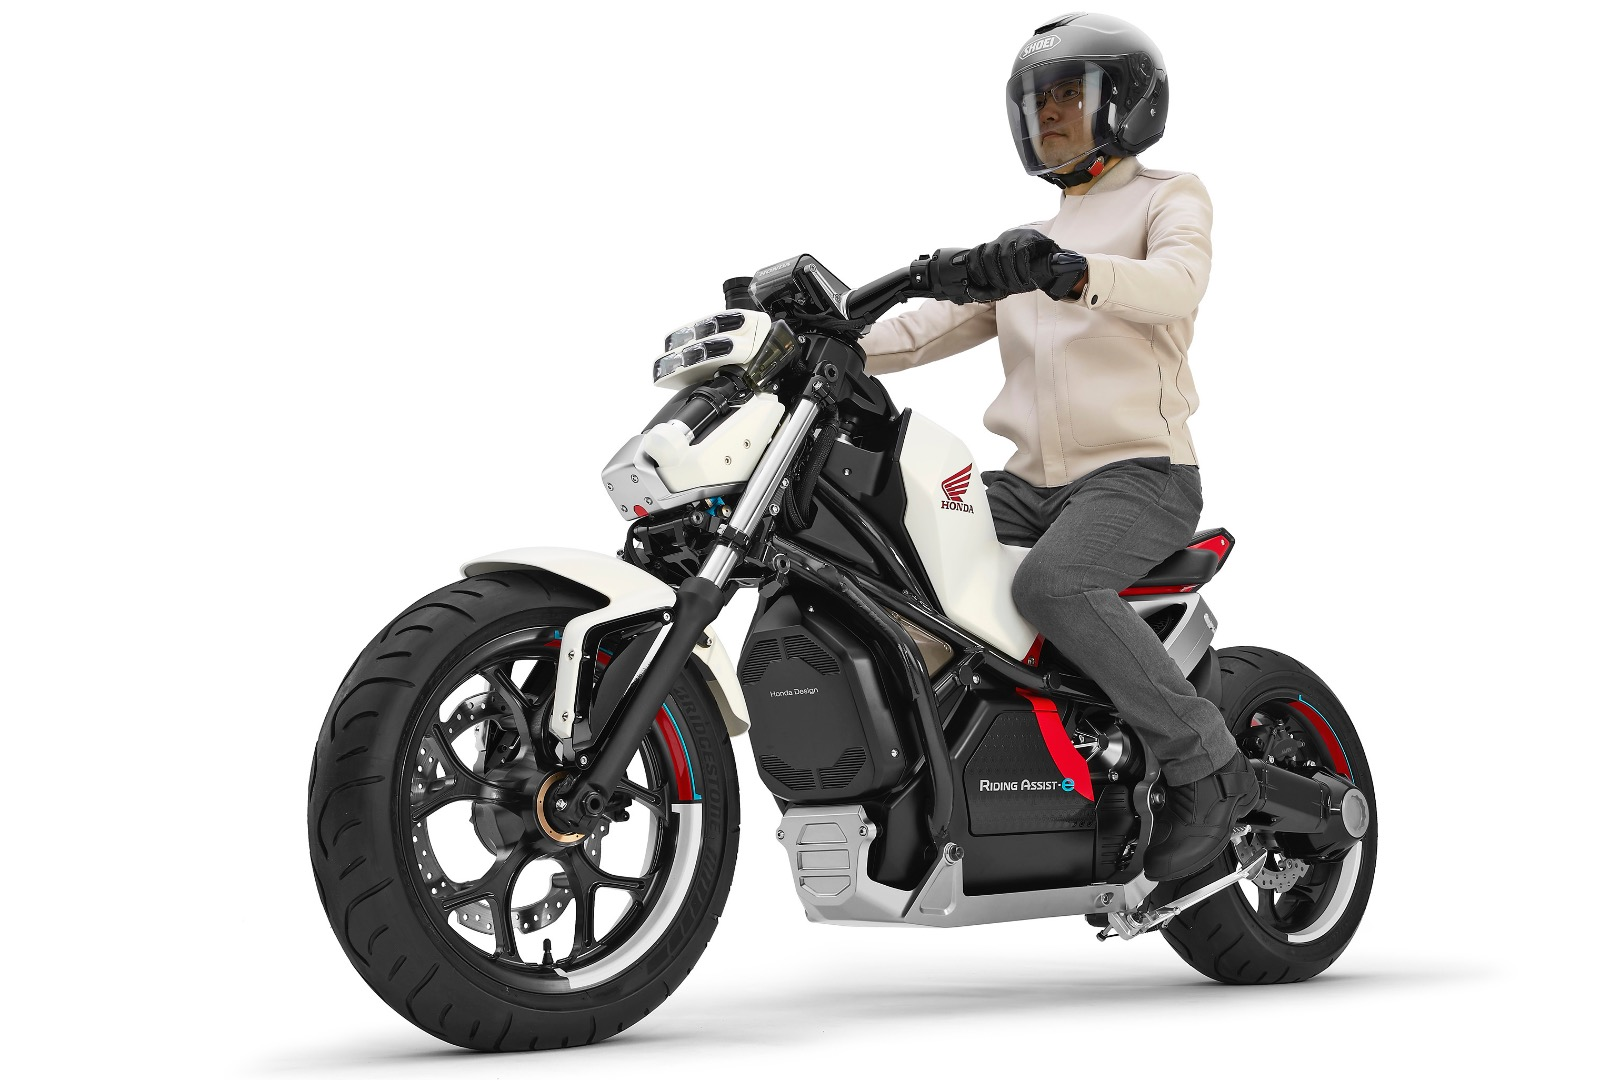 honda riding assiste debuts concept electric motorcycle